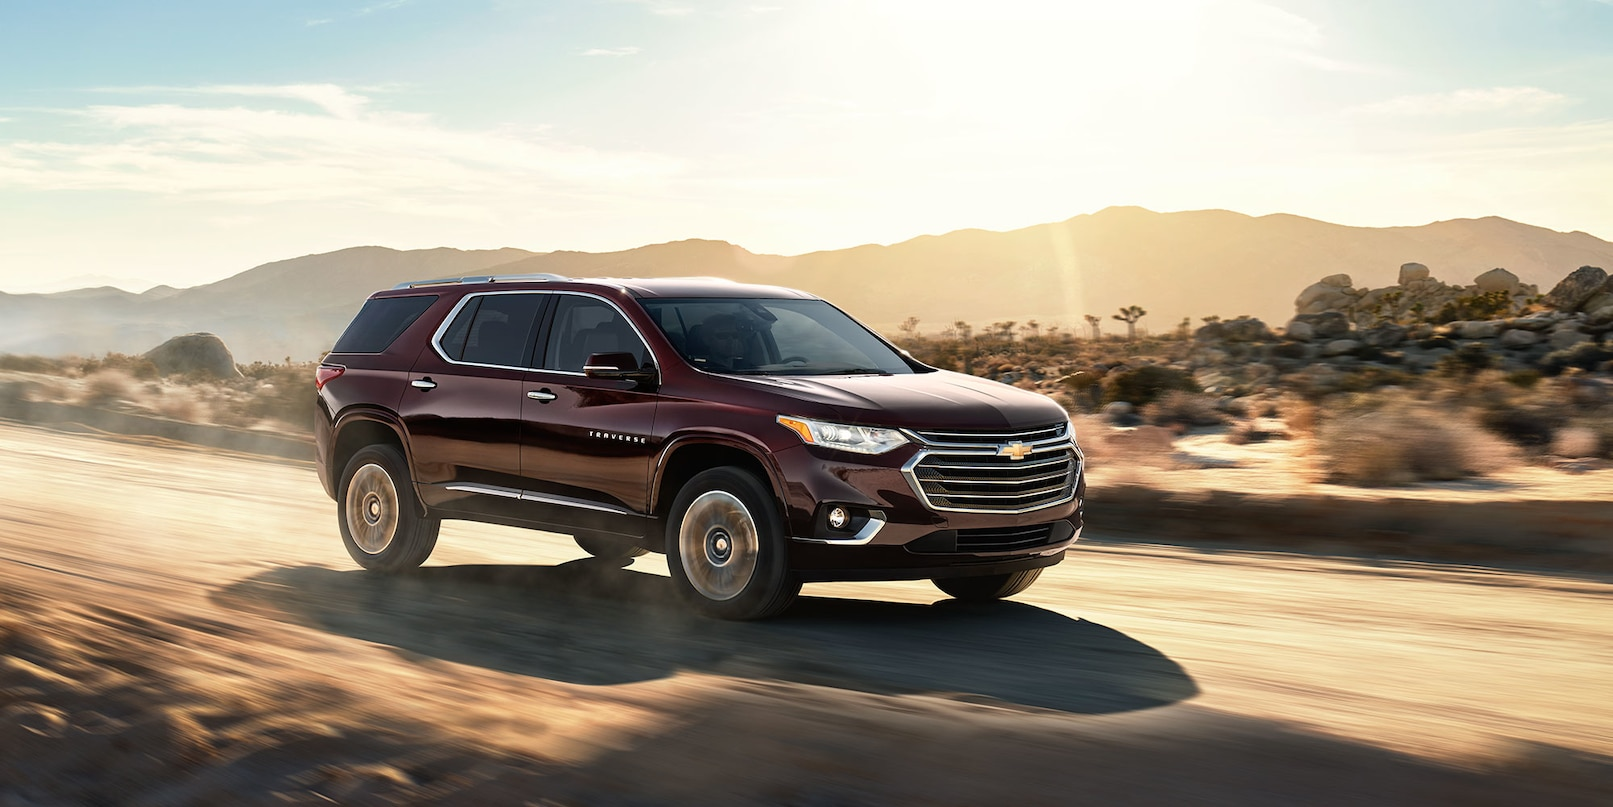 2018 chevrolet traverse leasing near washington dc pohanka chevrolet